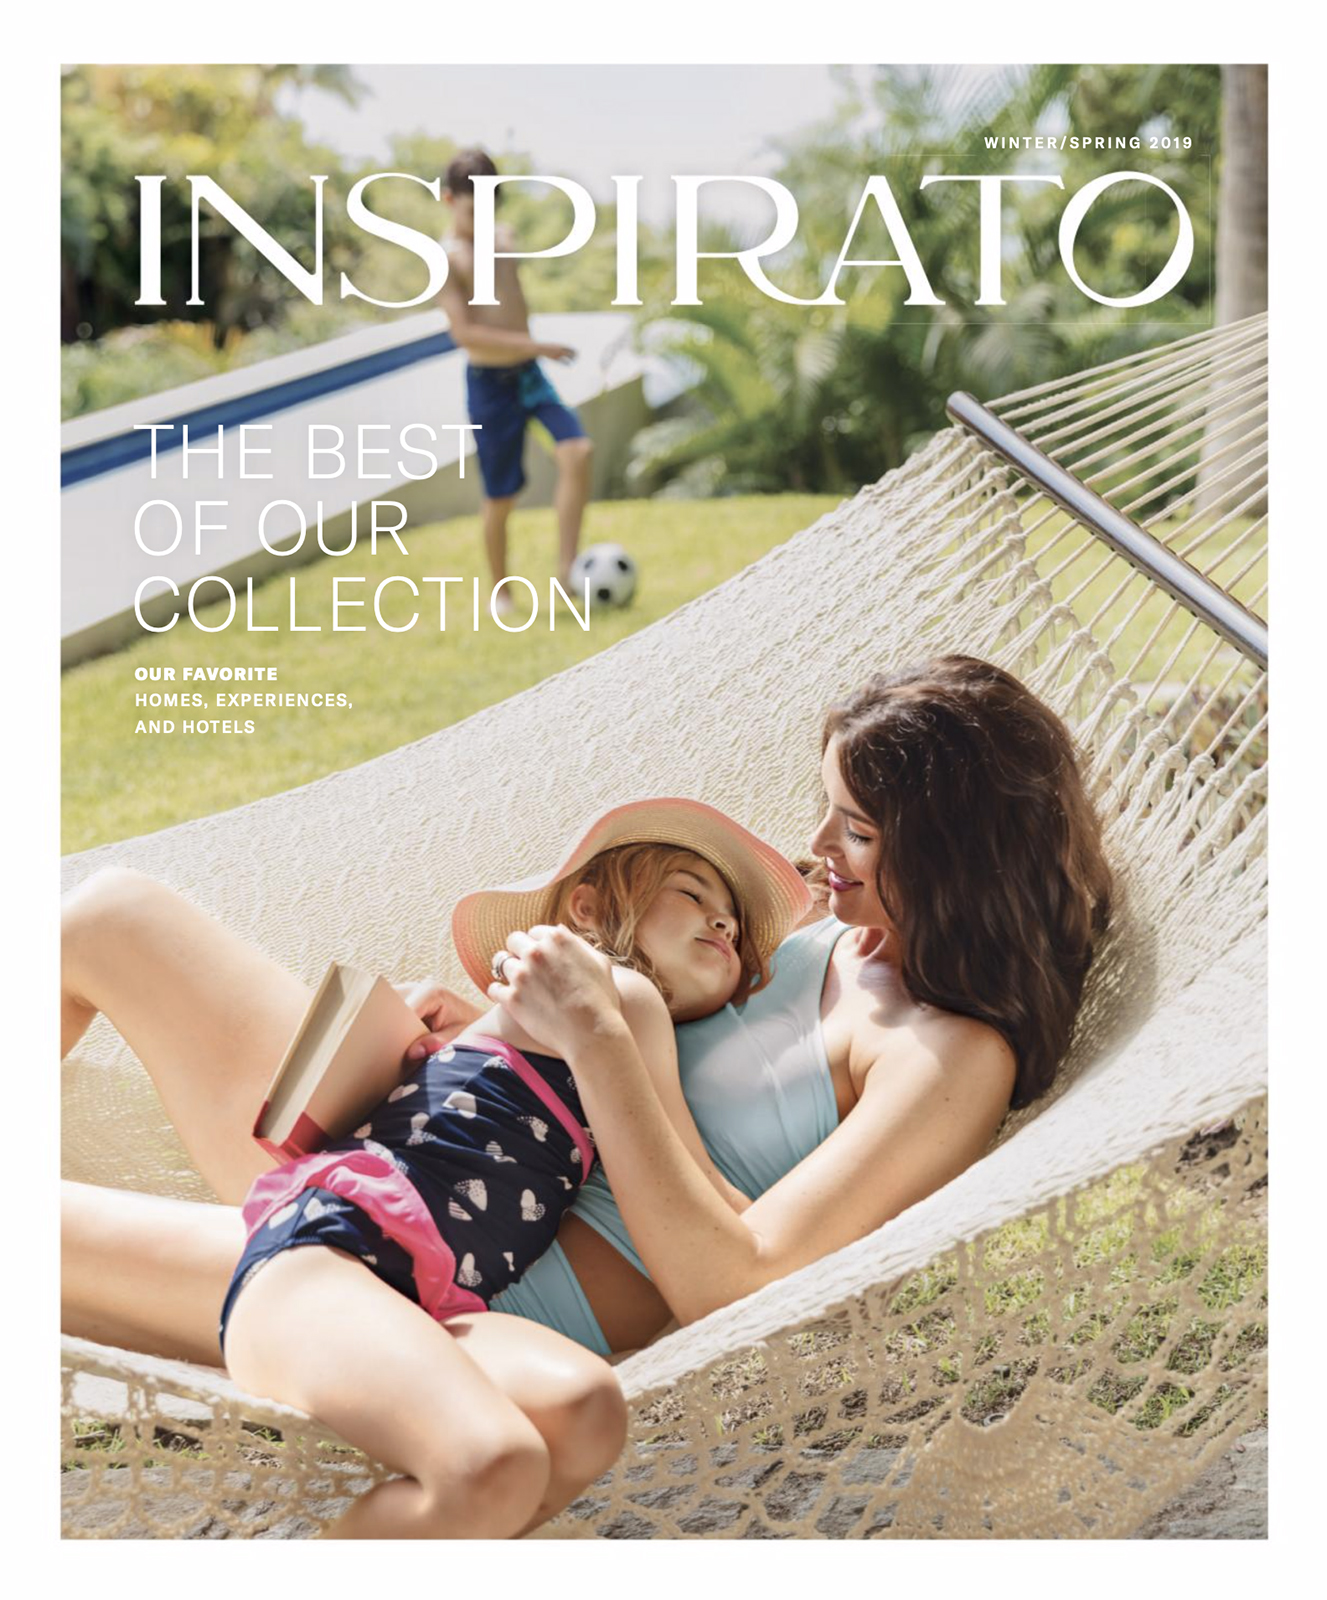 Featured photos - Inspirato Magazine - Winter/Spring 2019 issue